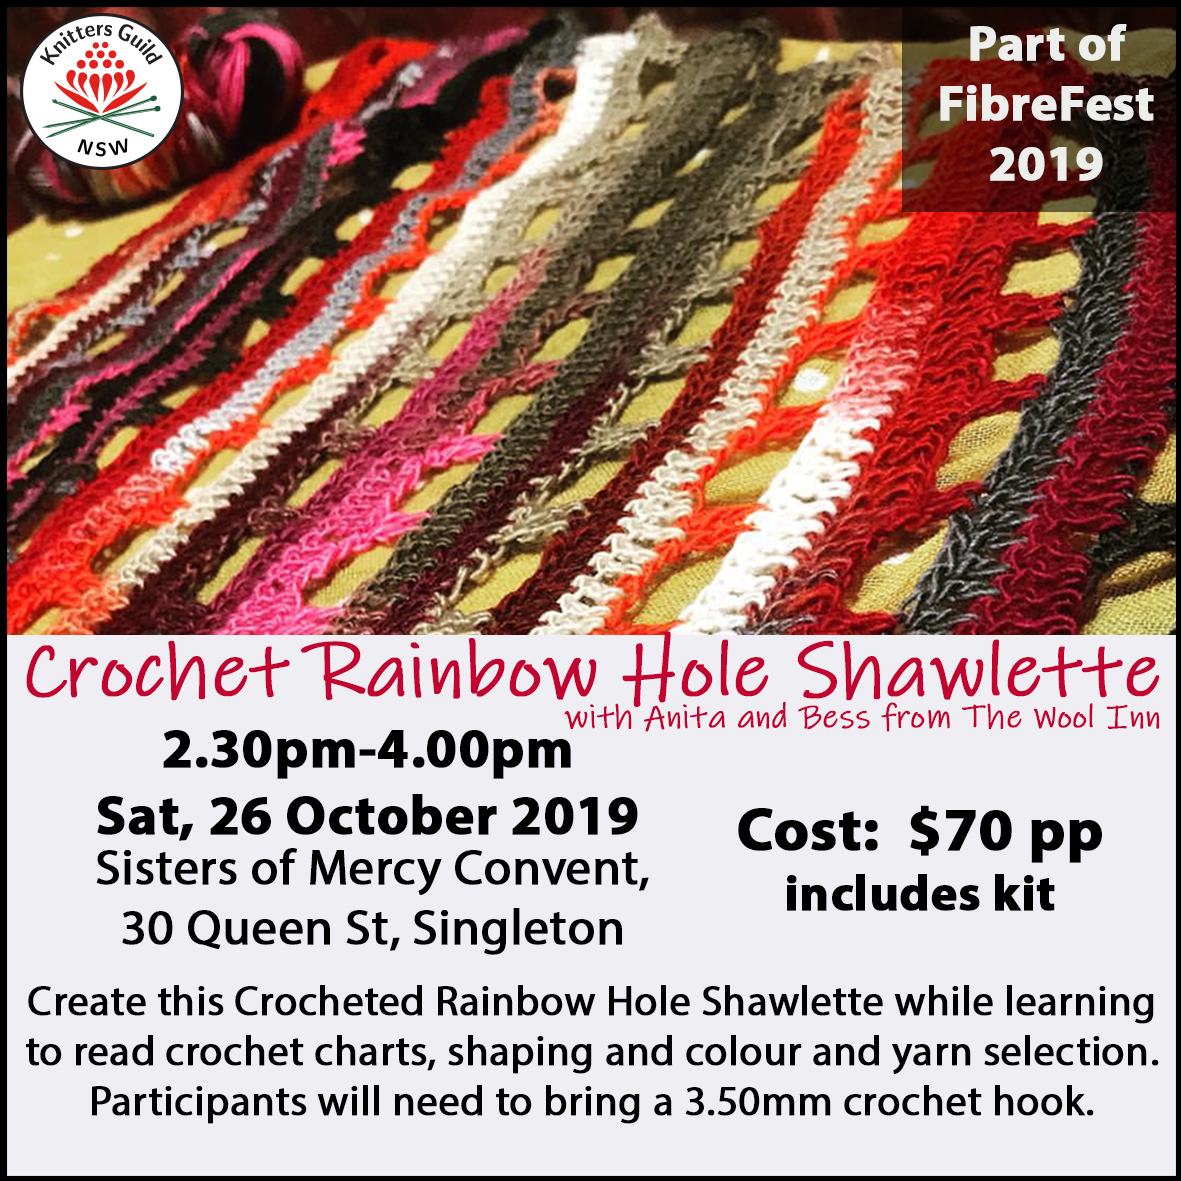 RainbowHoleShawlette workshop